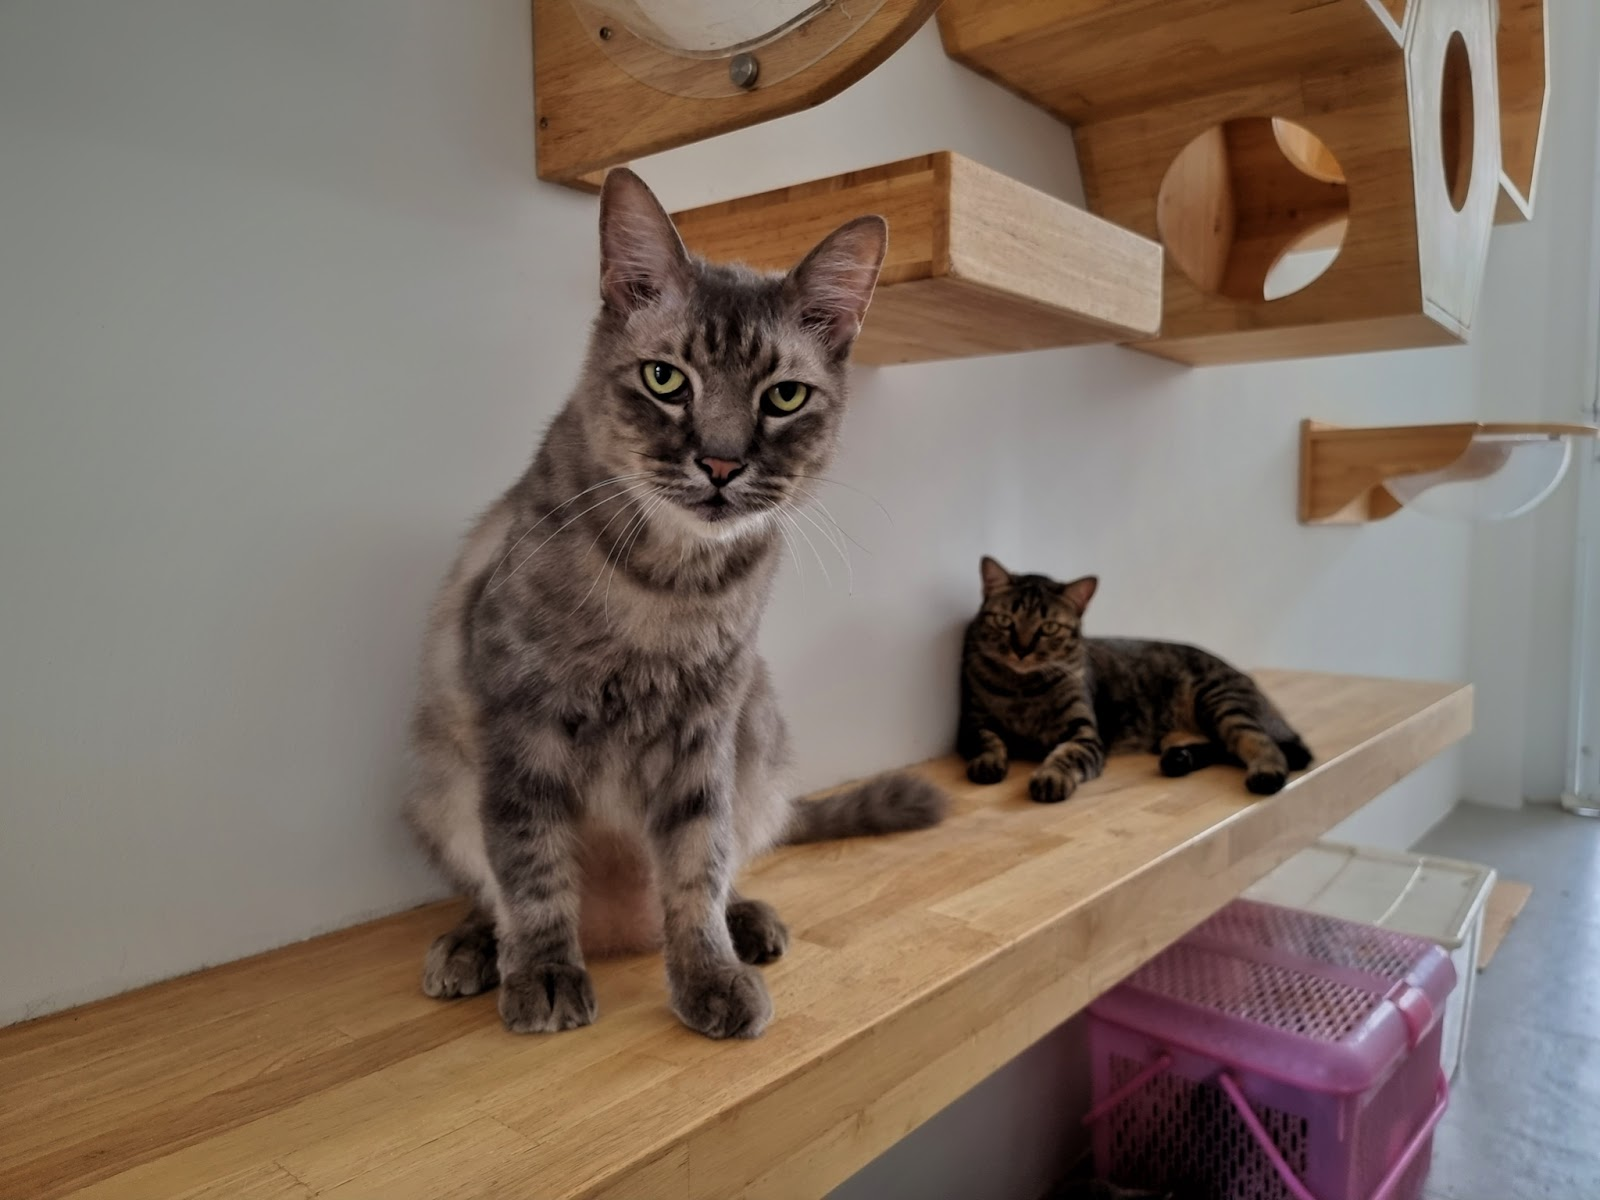 Cats on a wall-mounted, natural wood shelf and obstacle course system.